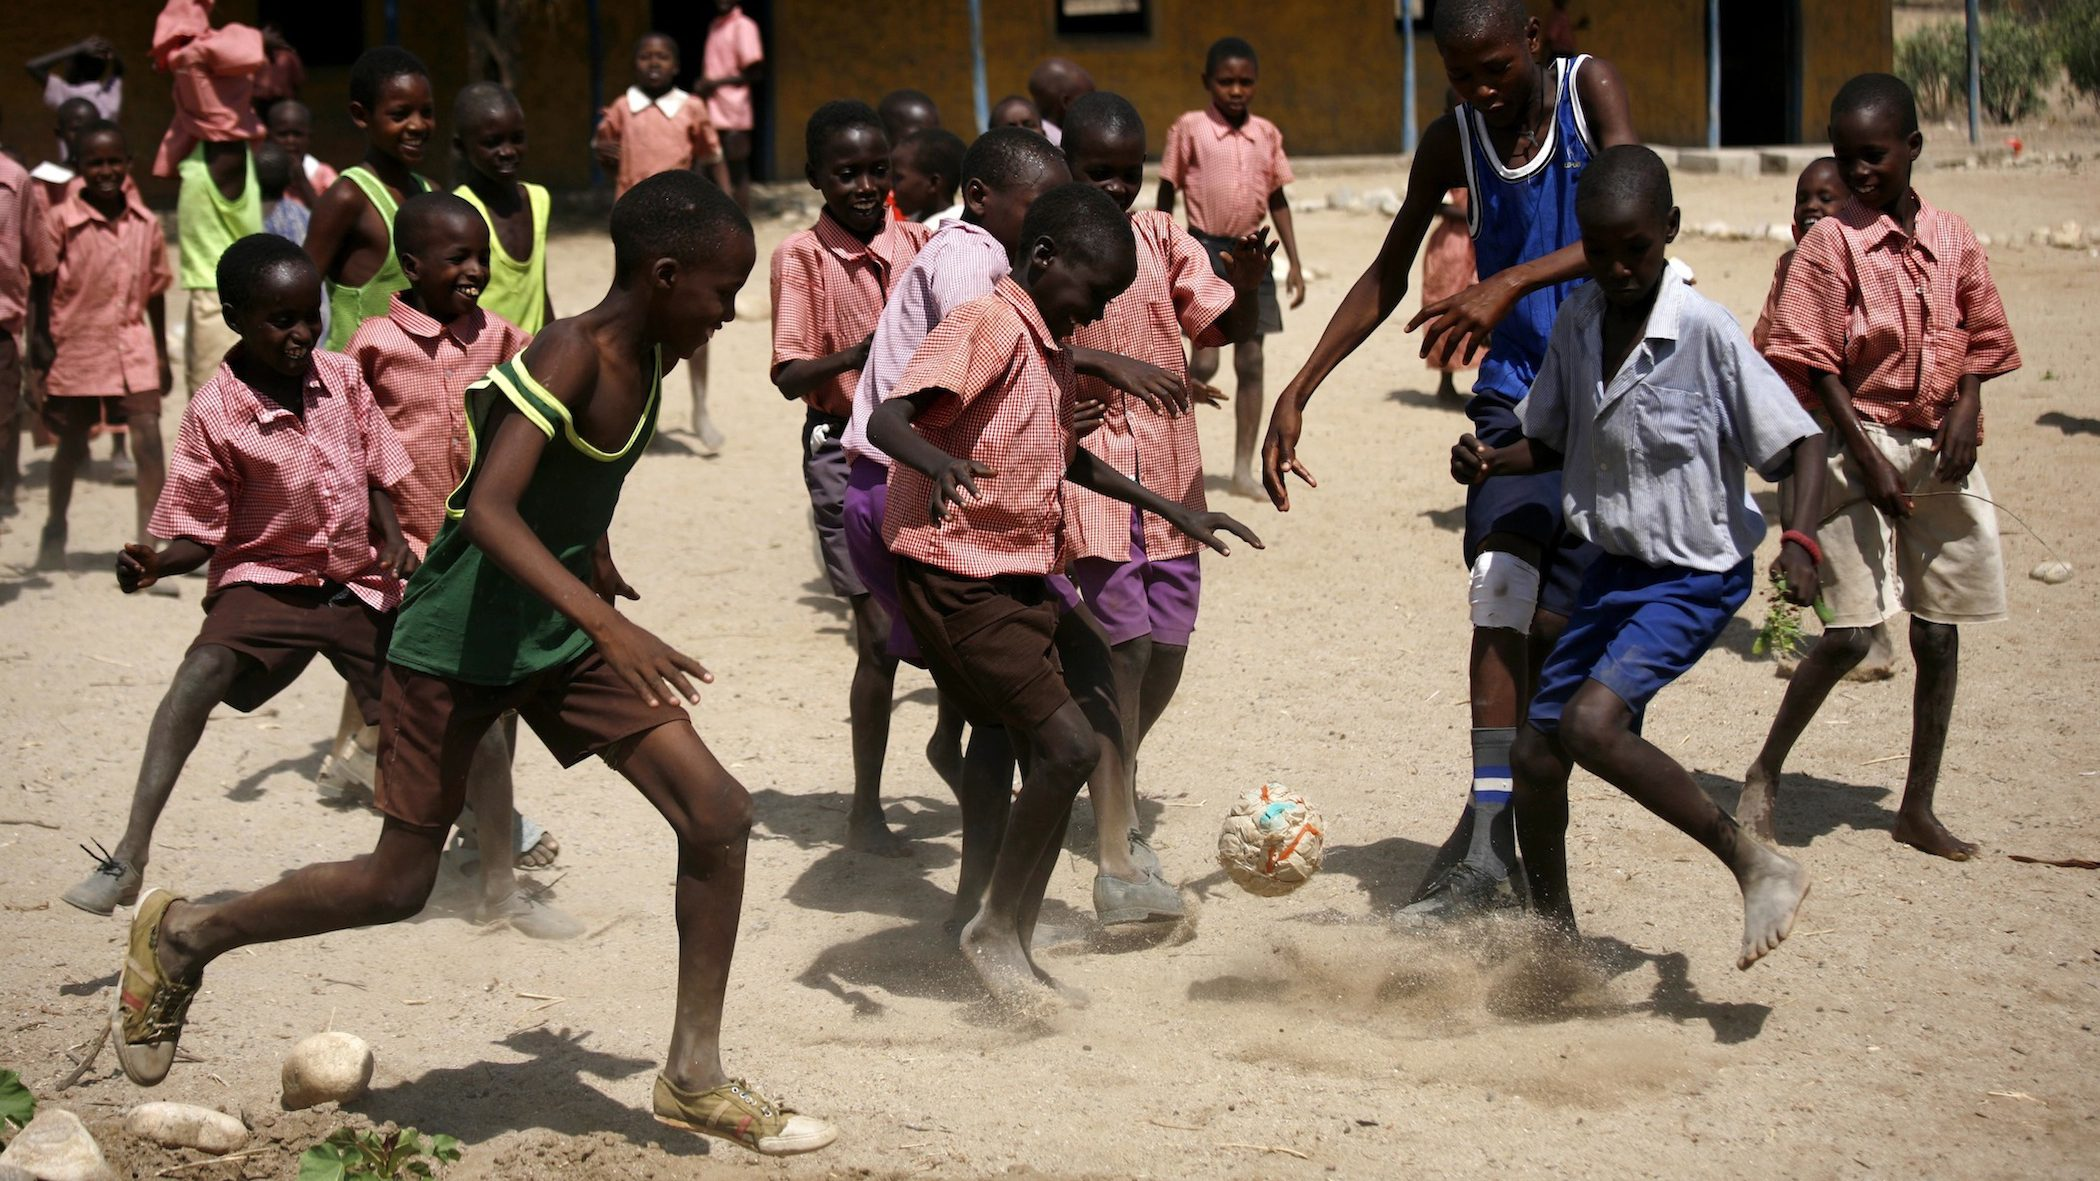 According to a new study, Tanzanian kids are among the world's fittest while Americans are among the least.